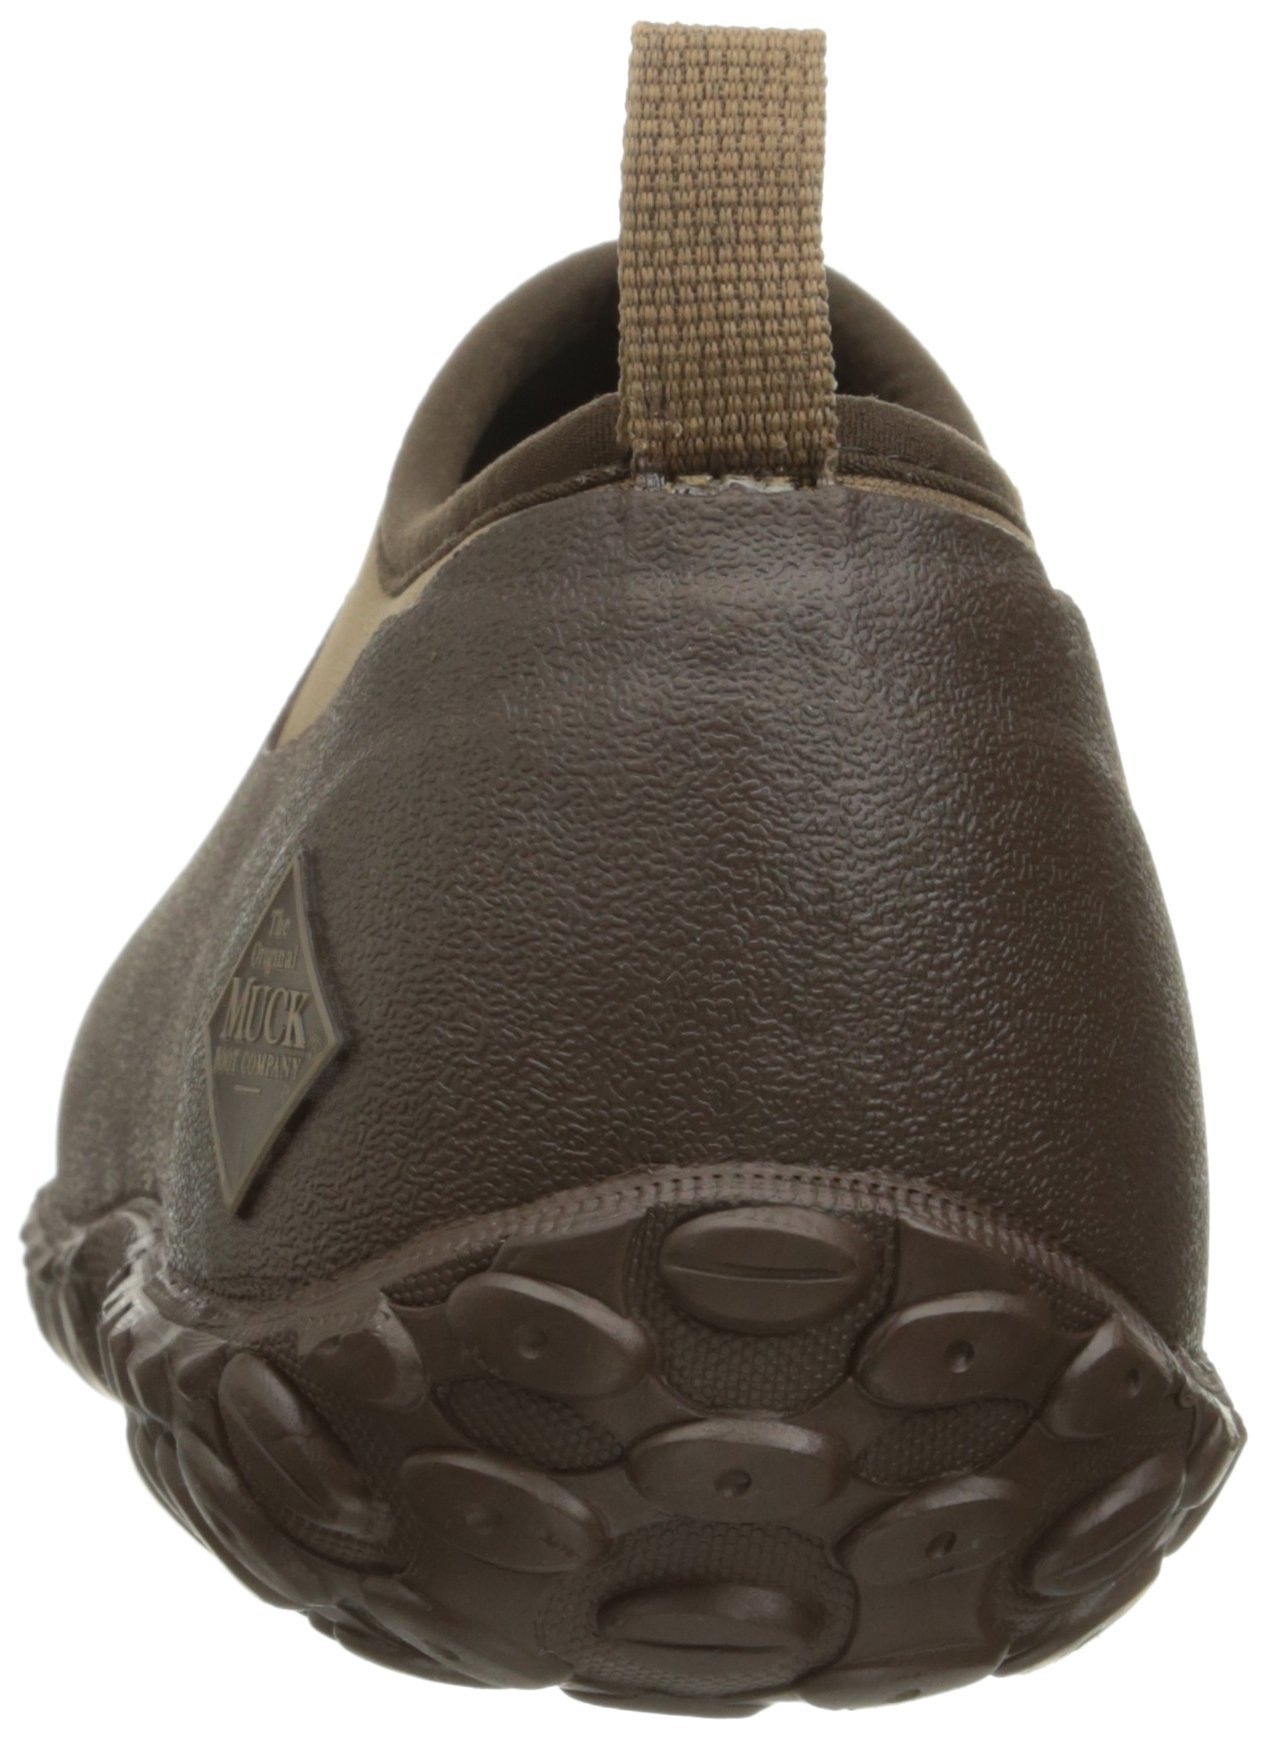 Muckster ll Men's Rubber Garden Shoes,Black/Otter,8 US/8-8.5 M US by Muck Boot (Image #2)